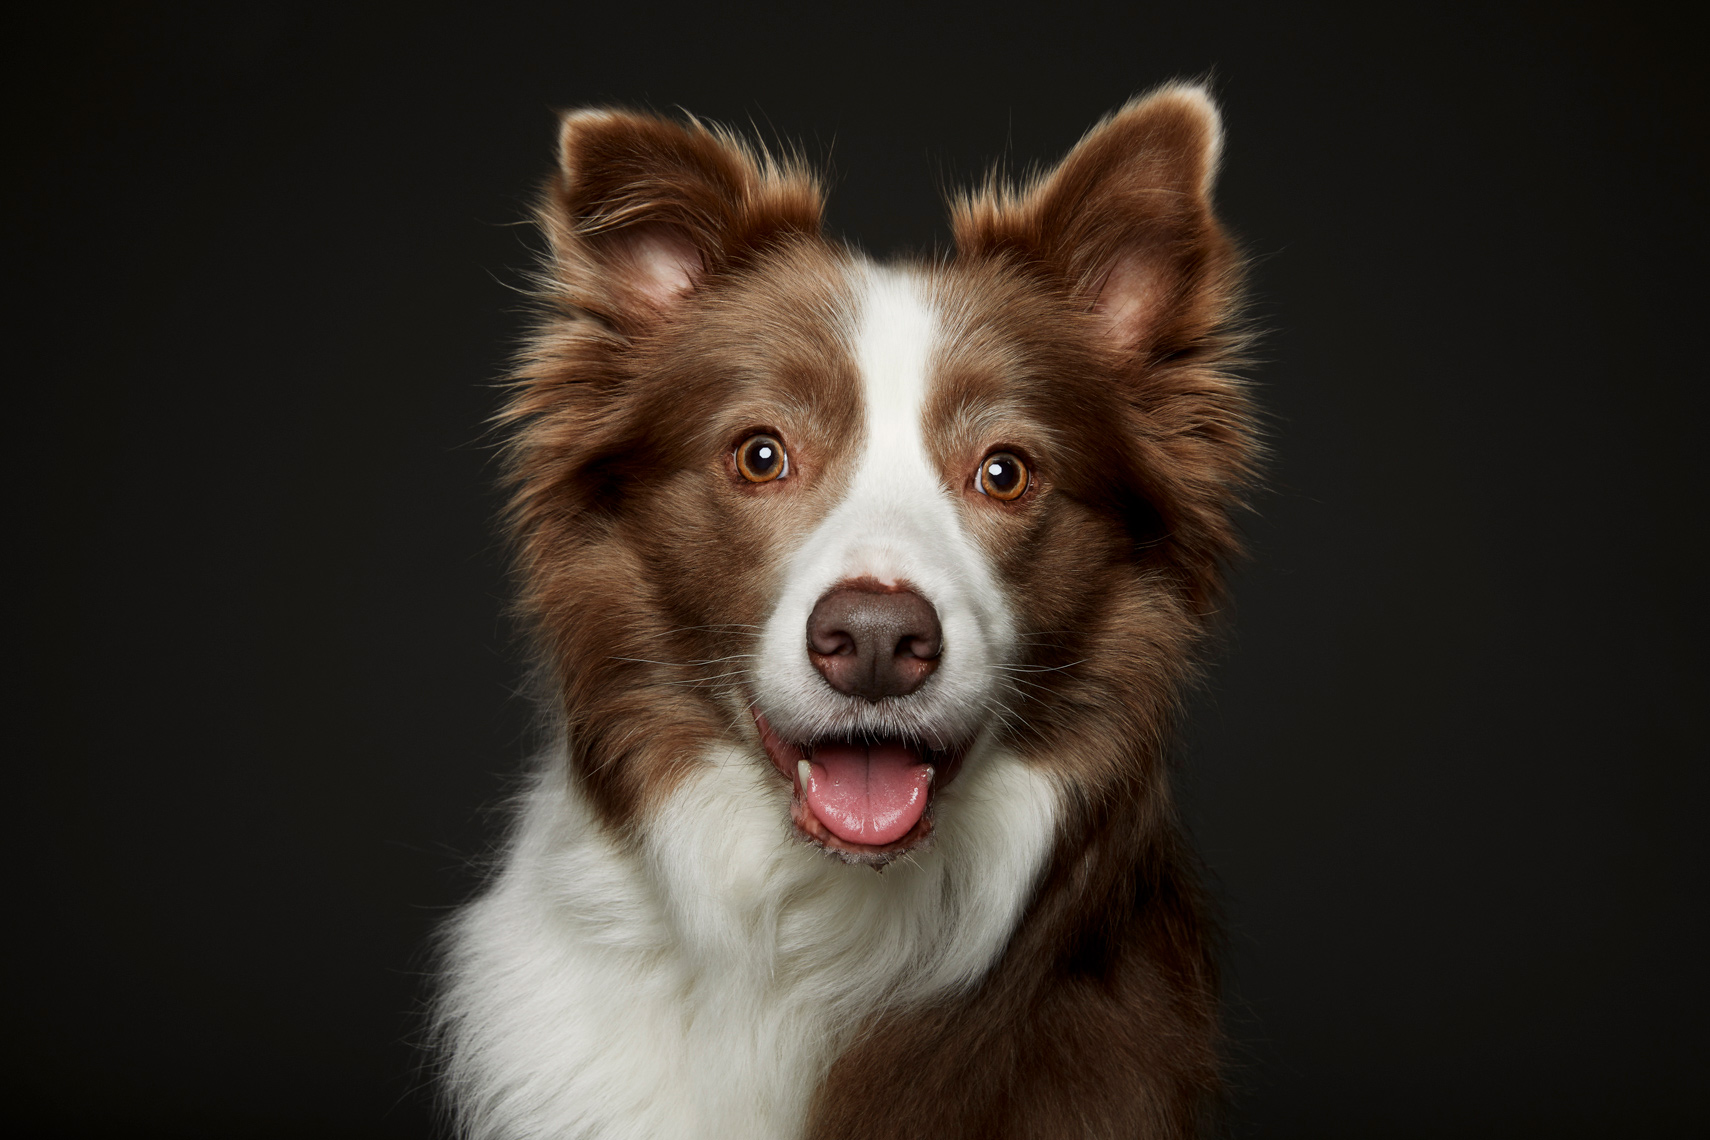 Beautiful Australian Cattle dog in studio portrait